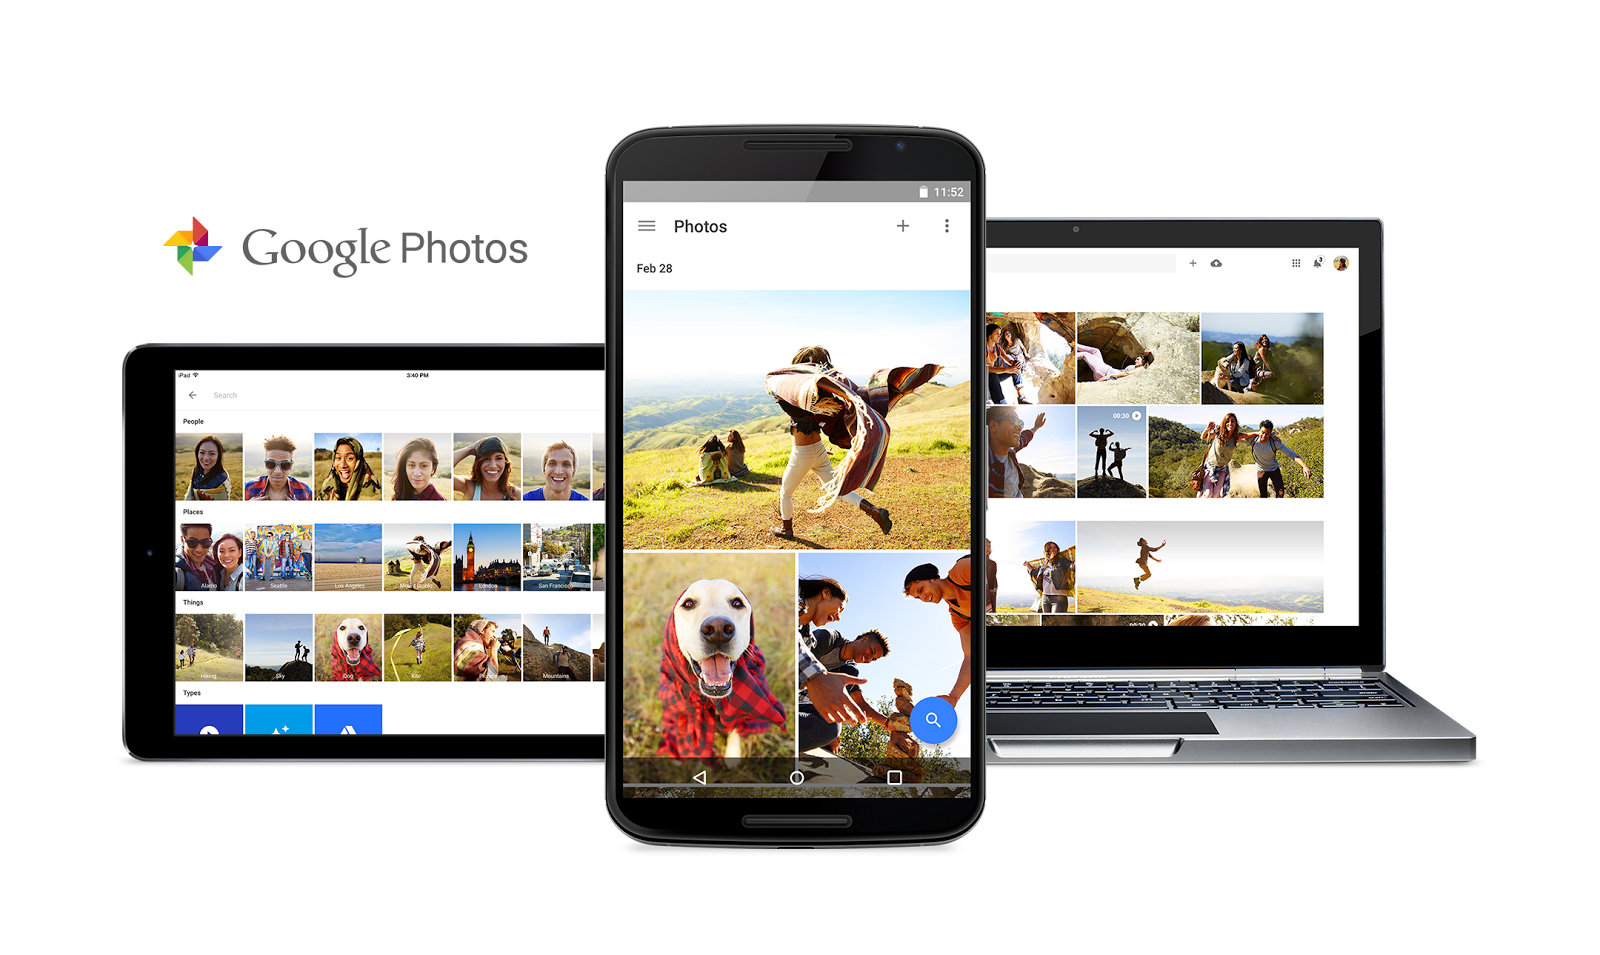 Google Photos gets smarter. Image Courtesy: Google Photos